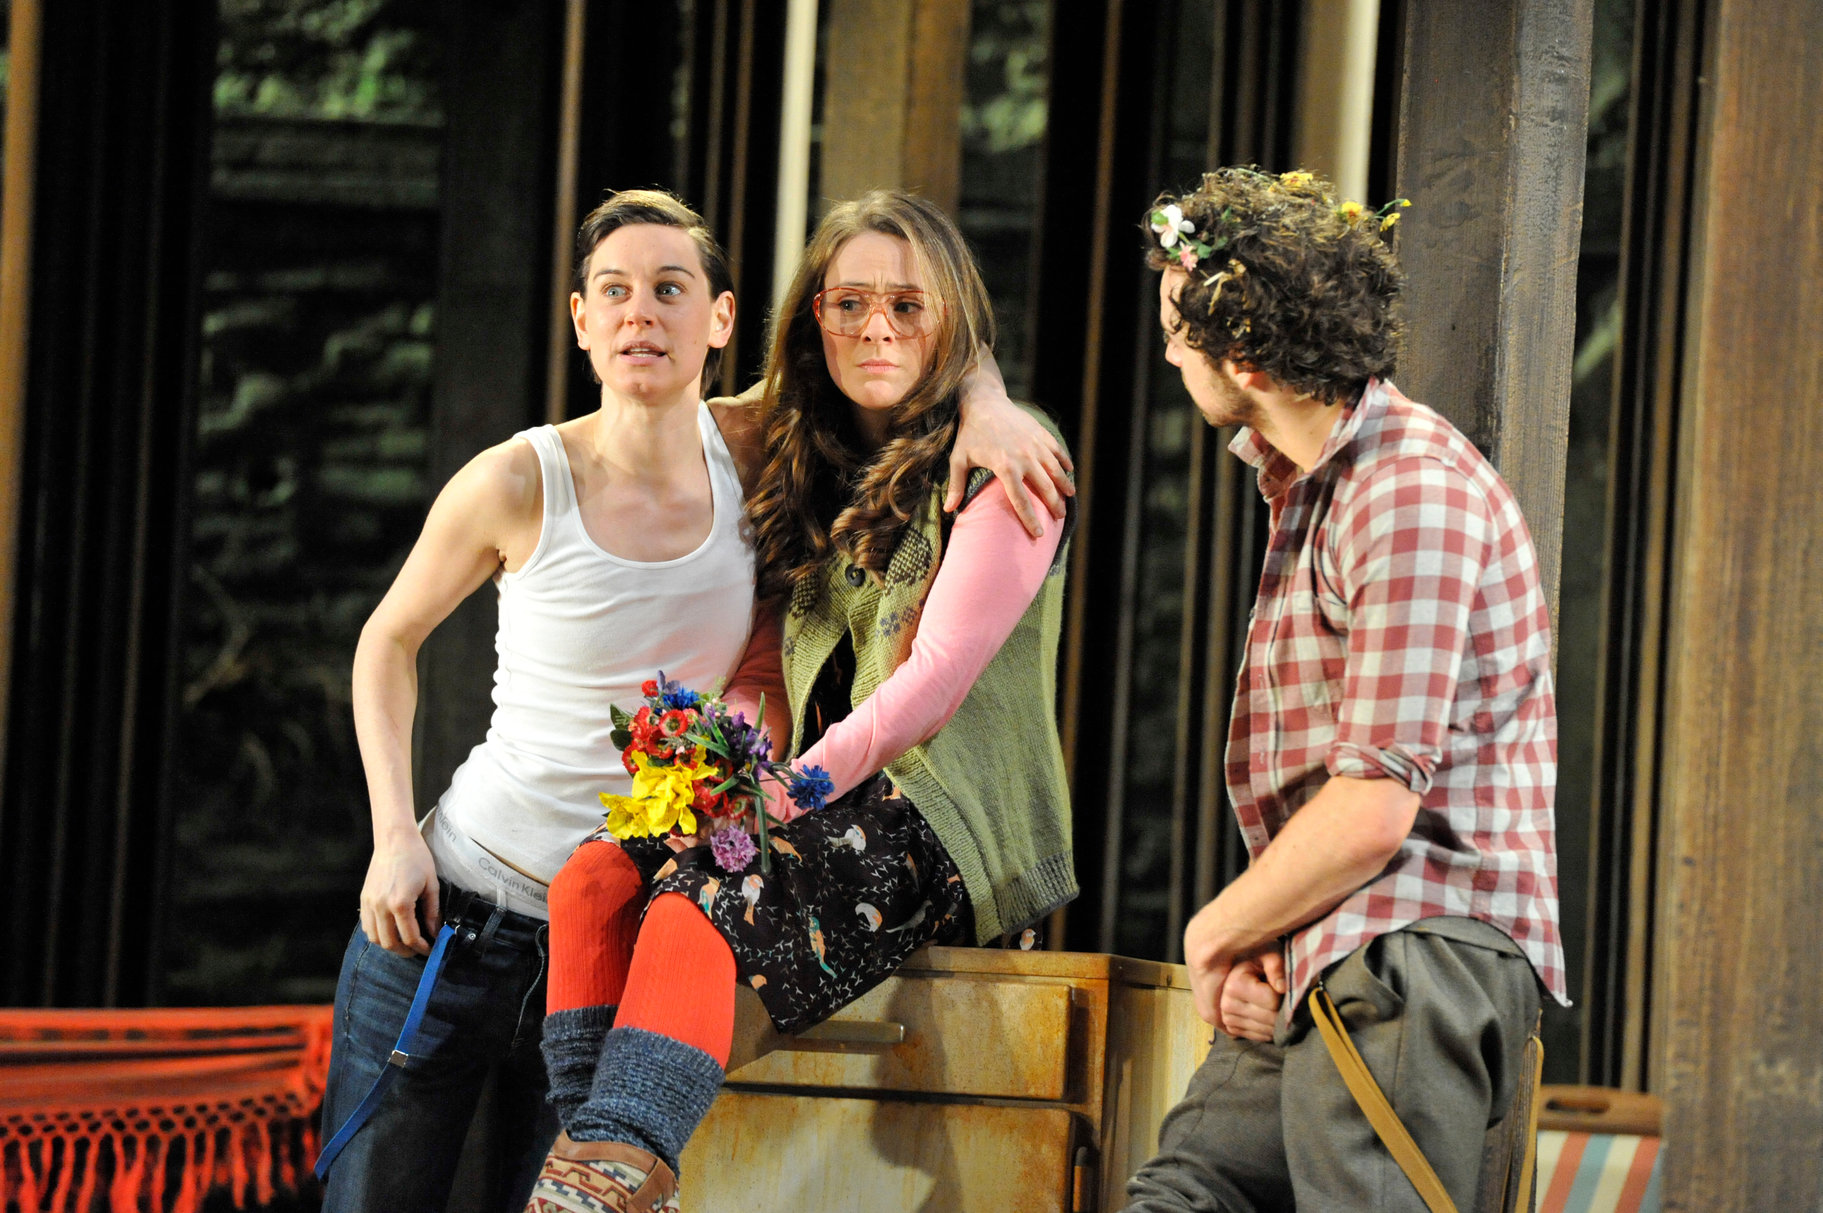 Celia and Rosalind in their disguises, talking to Orlando.